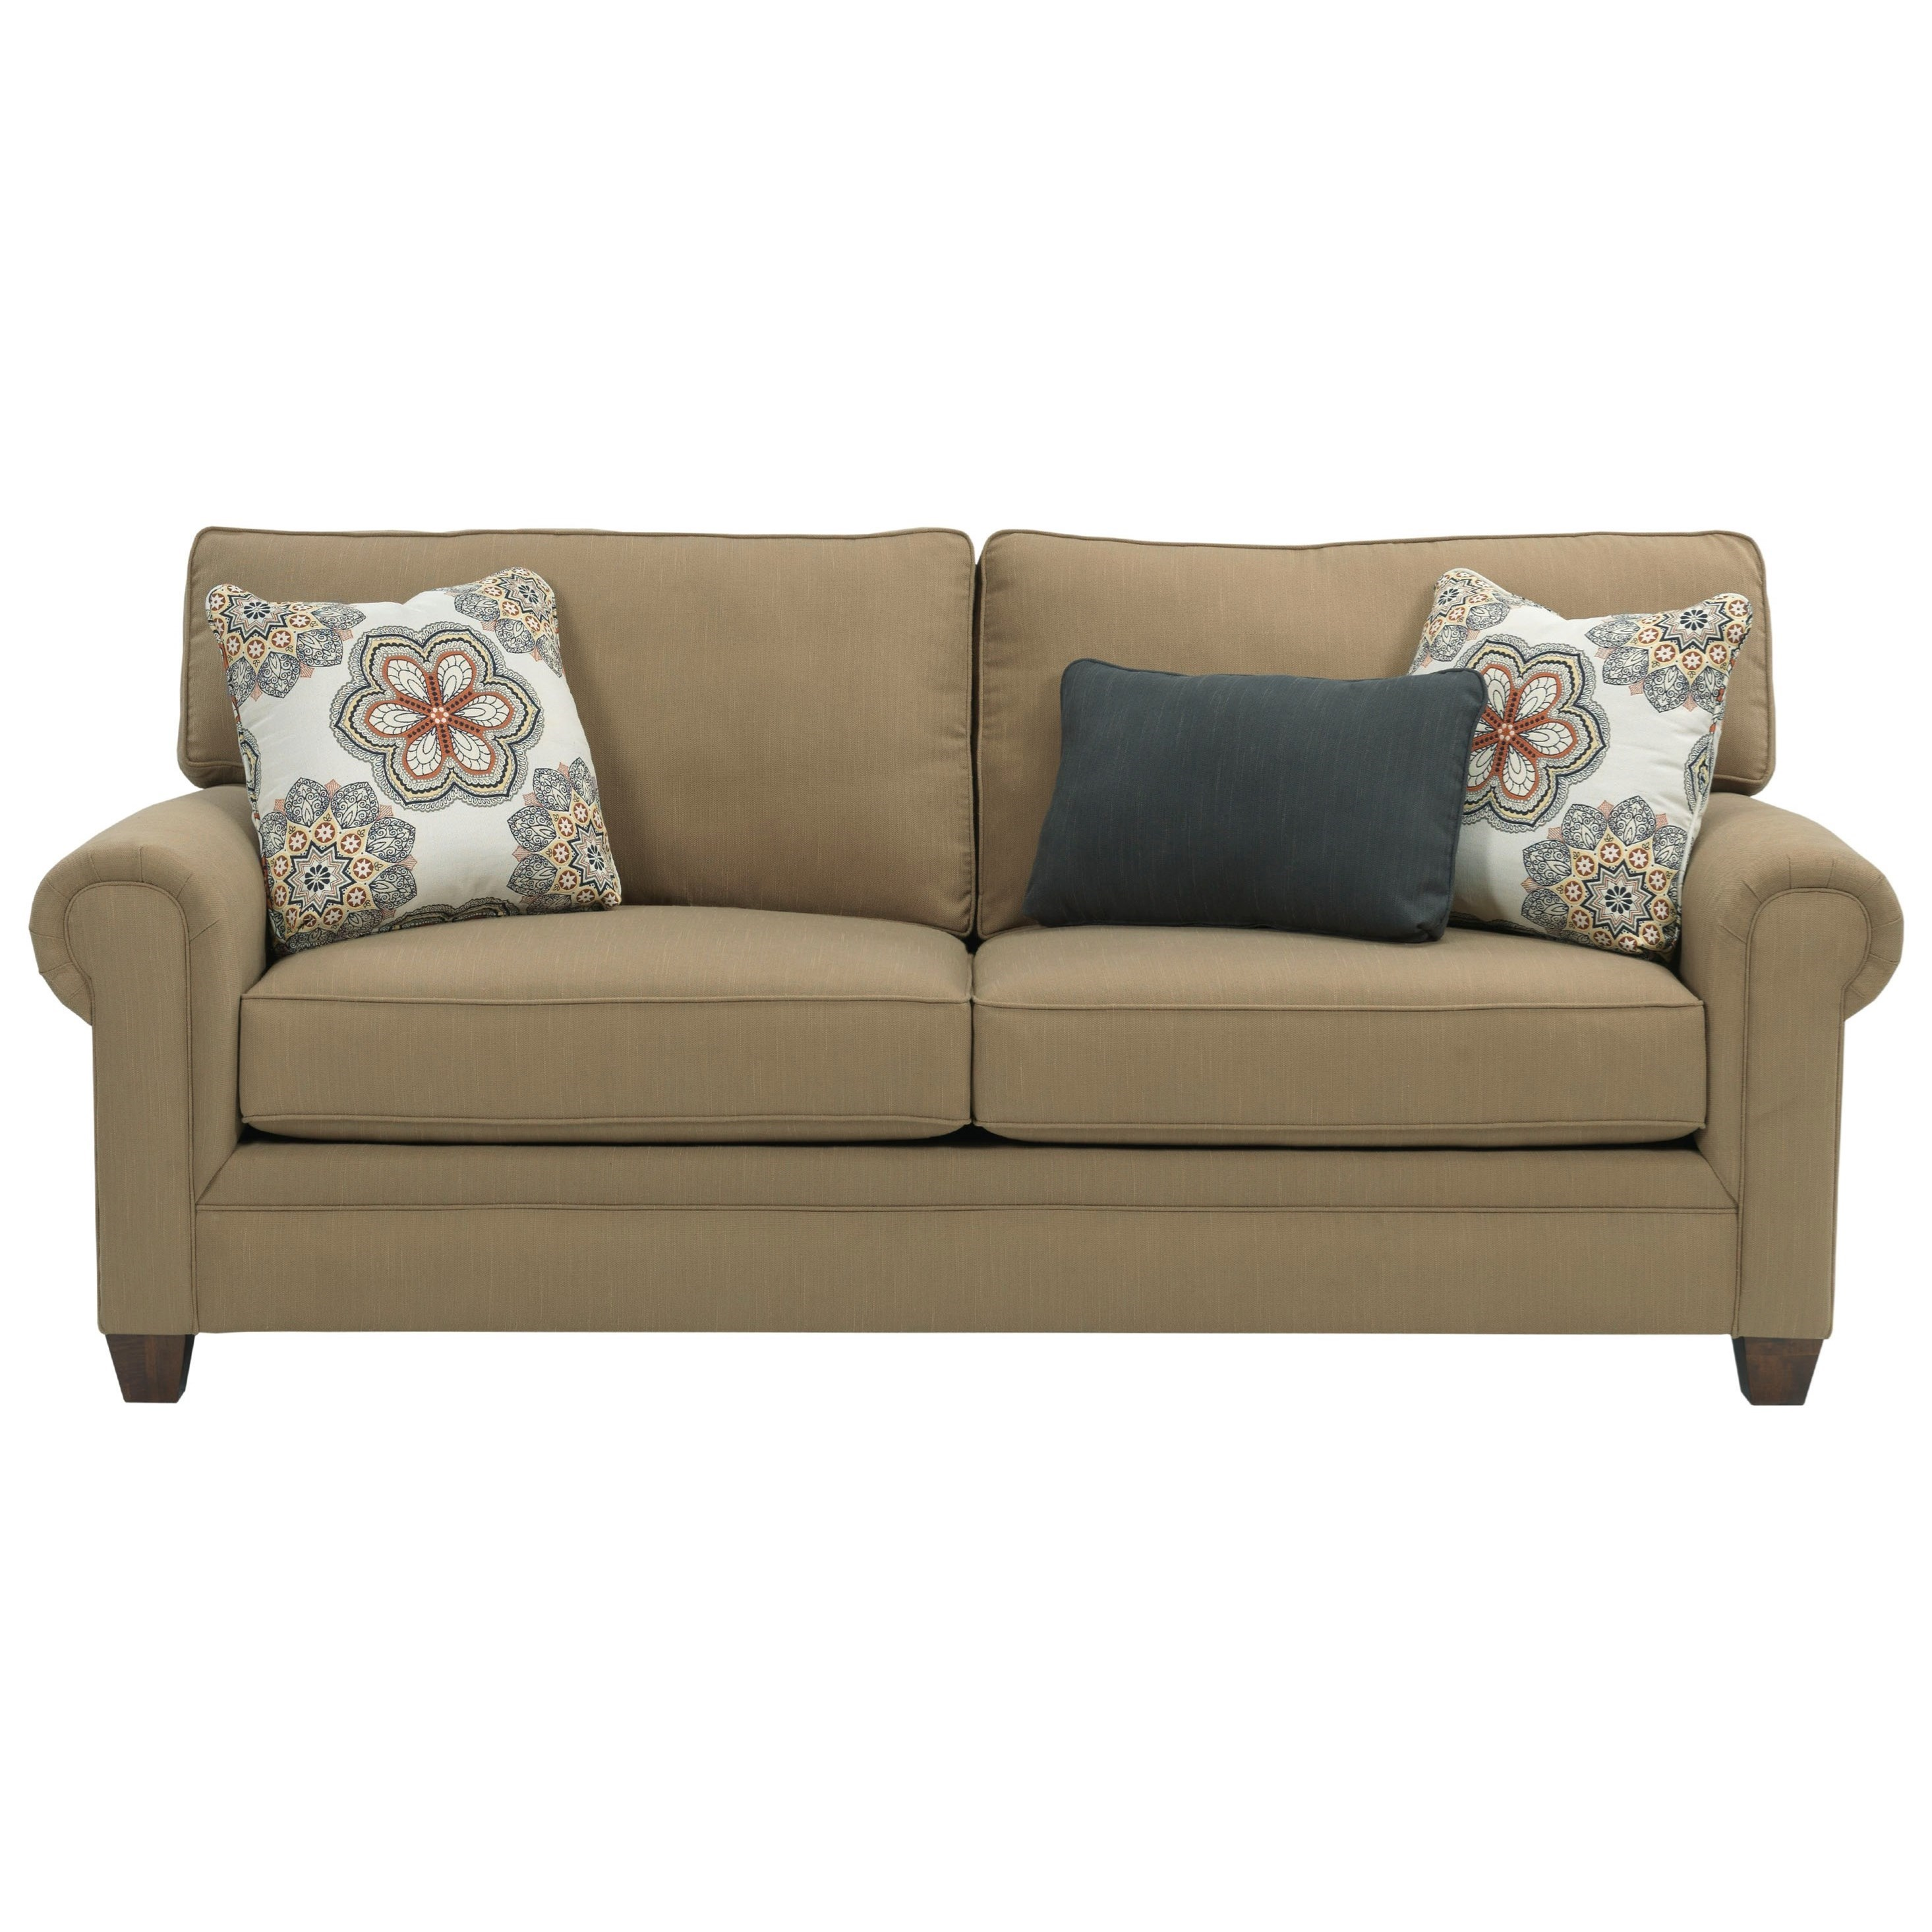 Broyhill Furniture Monica 3678 7a Transitional Queen Air Dream Sleeper Sofa With Rolled Arms